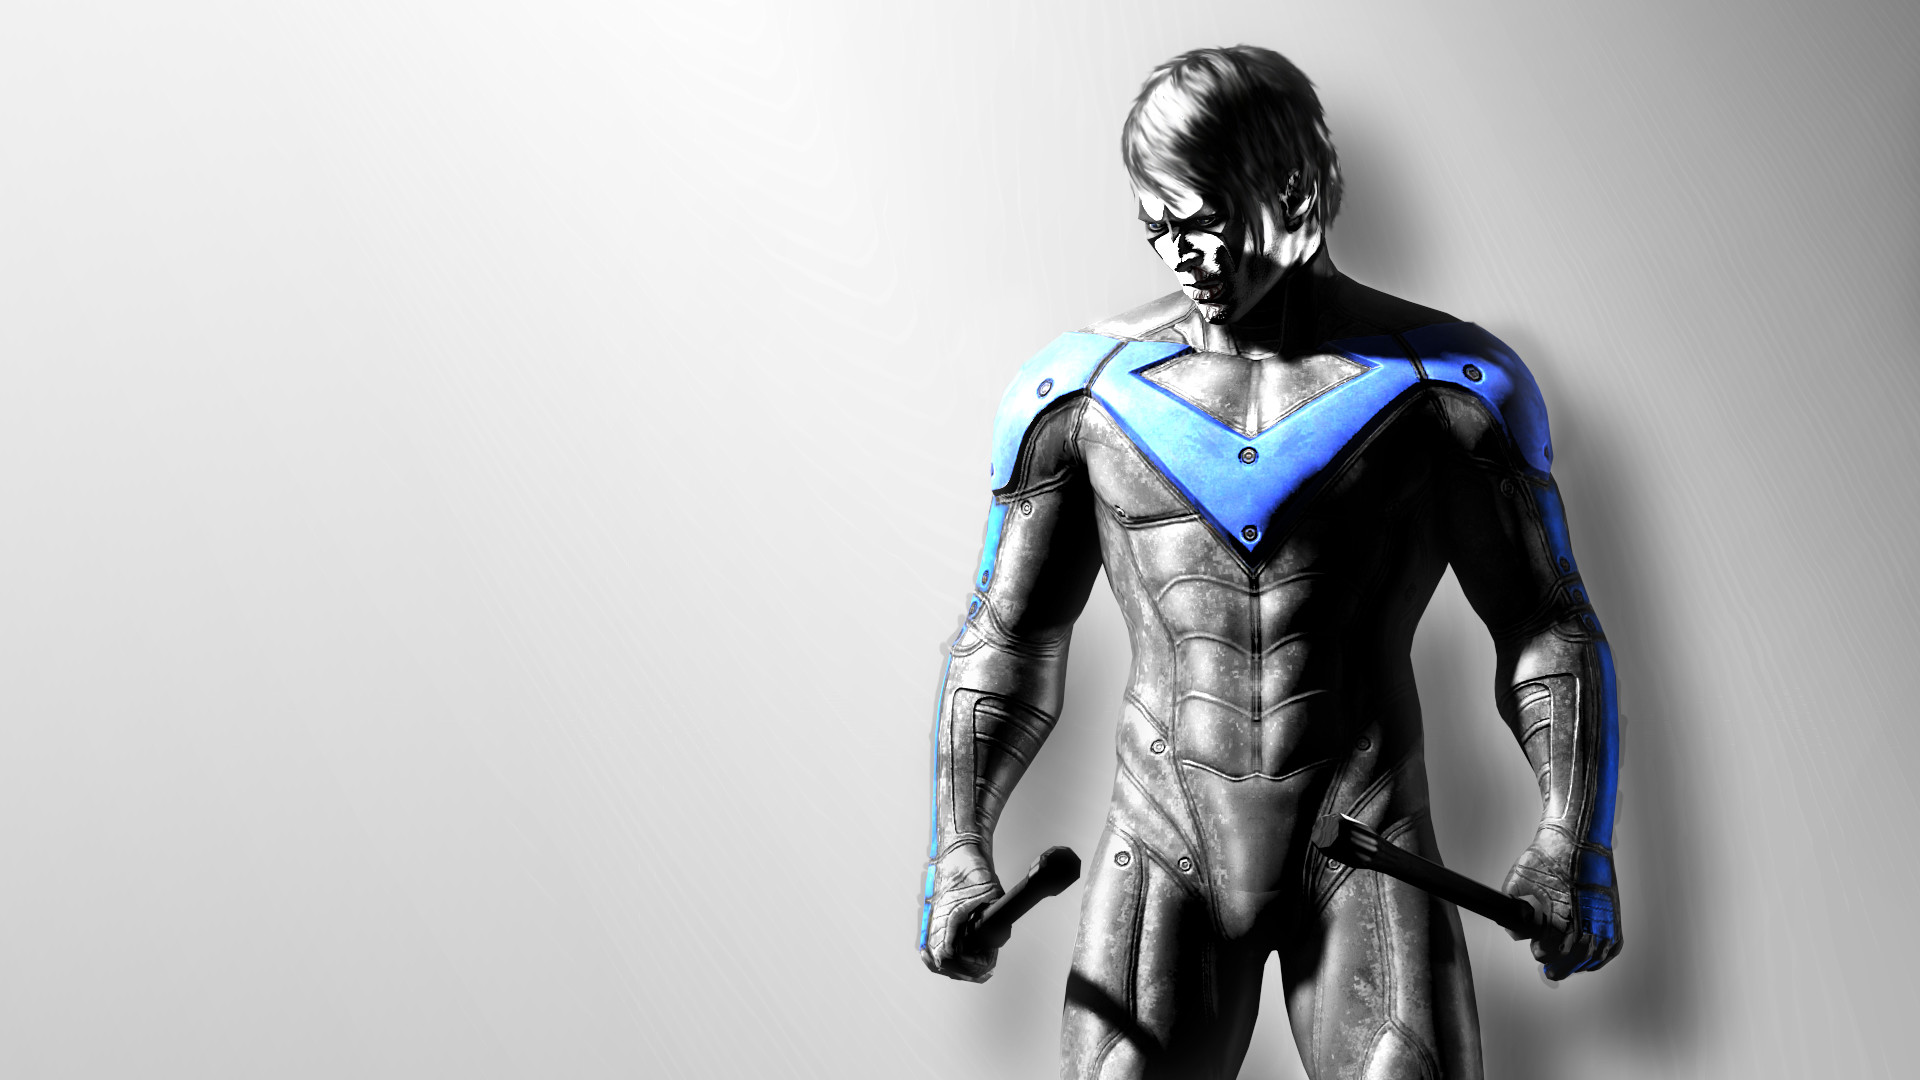 1920x1080 Nightwing Wallpapers - Wallpaper Cave